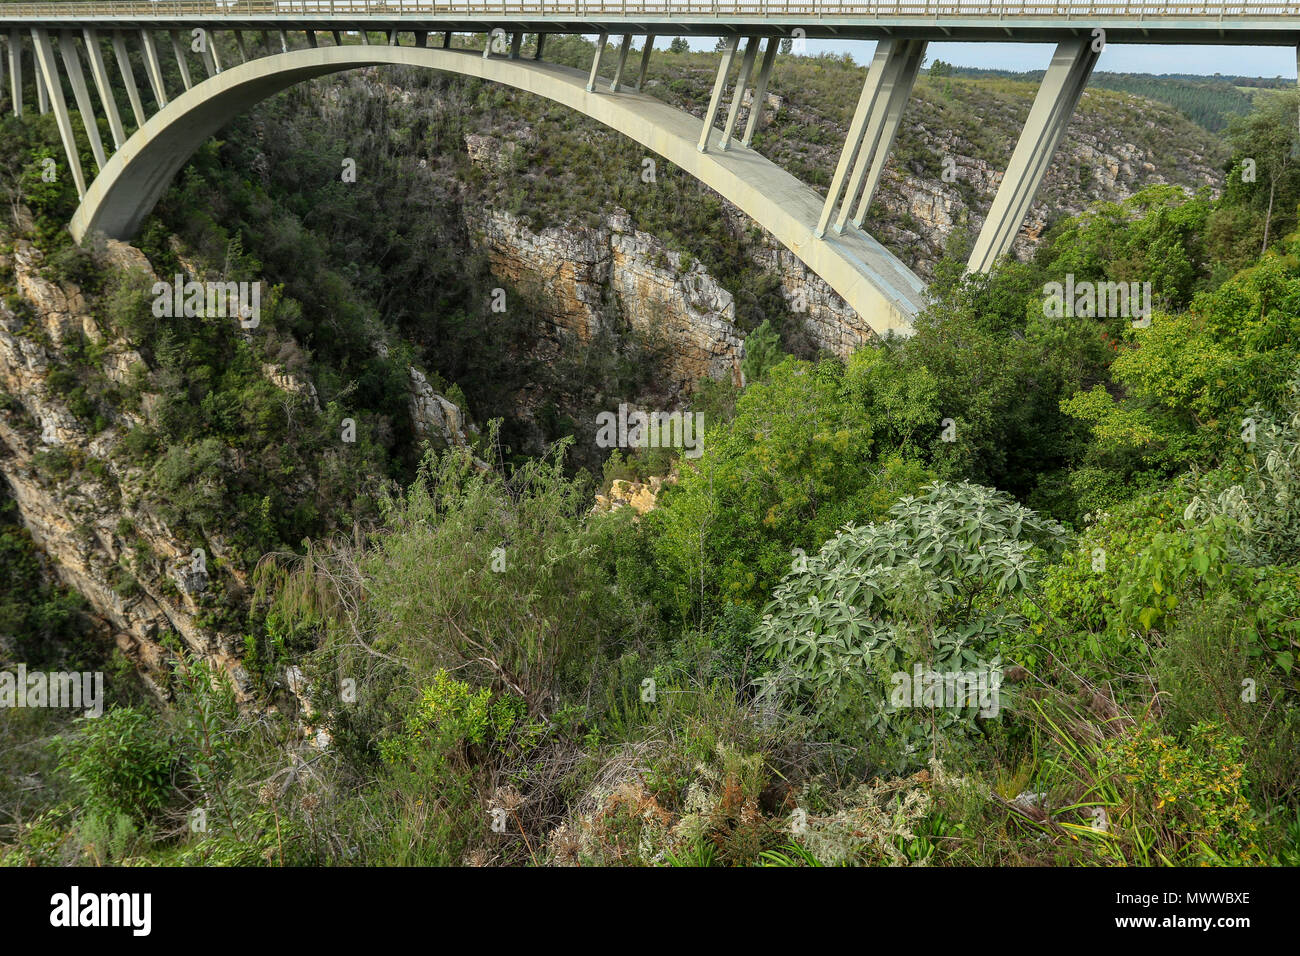 South African fynbos under the Paul Sauer Bridge, Nature's Valley, Western Cape, in the Tsitsikamma protected area on the Garden Route, South Africa Stock Photo